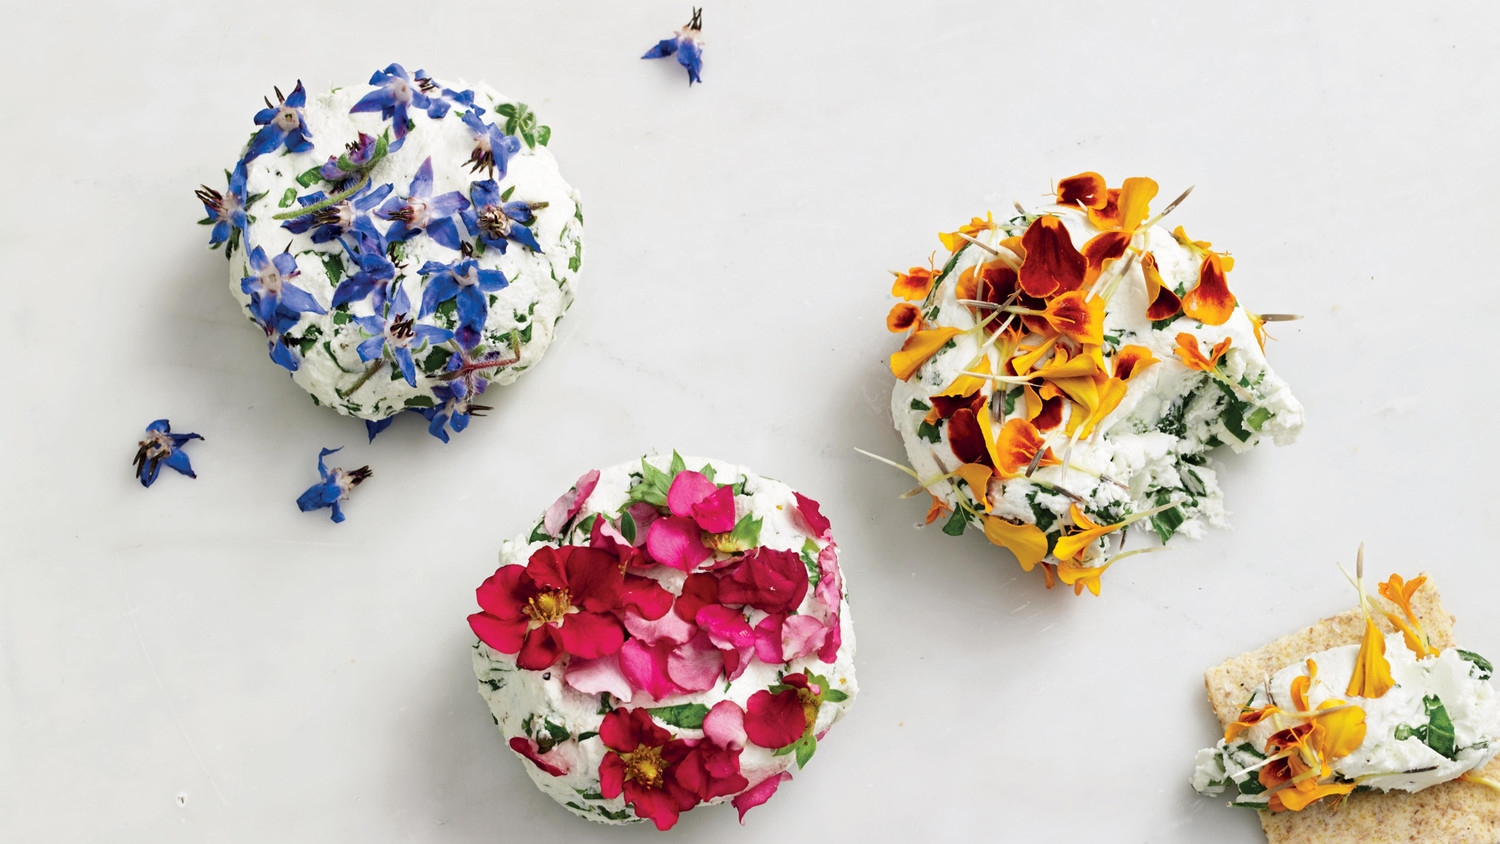 Goat Cheese With Edible Flowers And Arugula